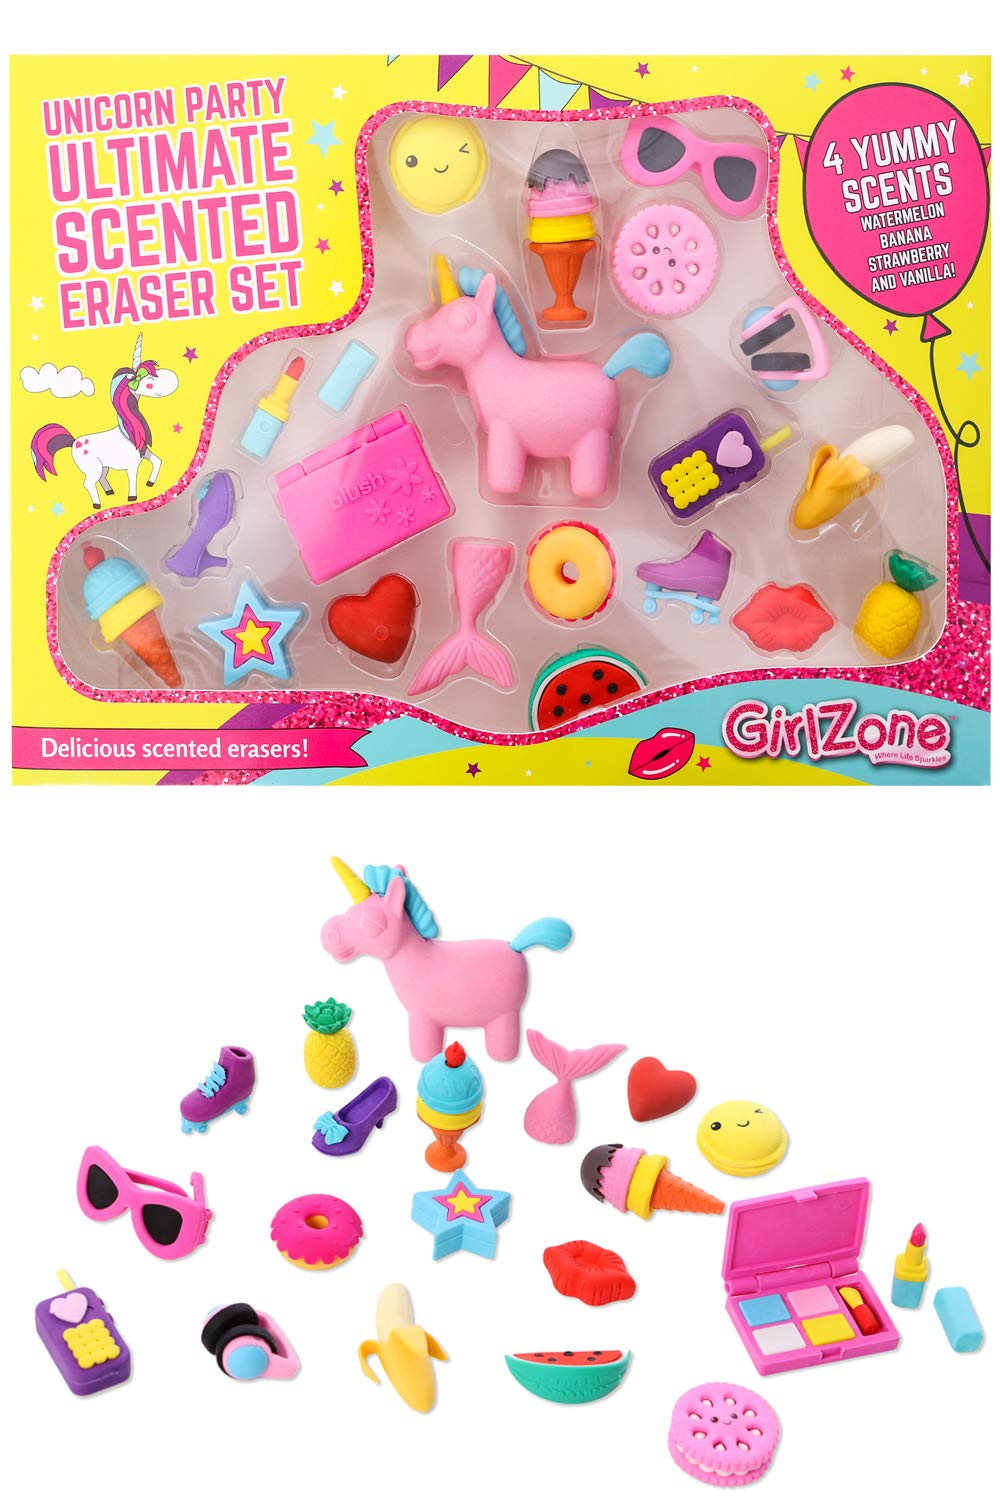 Birthday Gifts for Girls: Unicorn Party Scented Erasers for Kids Set, Cute School Supplies, Arts and Crafts for Kids, Unicorn Gifts for Girls by GirlZone